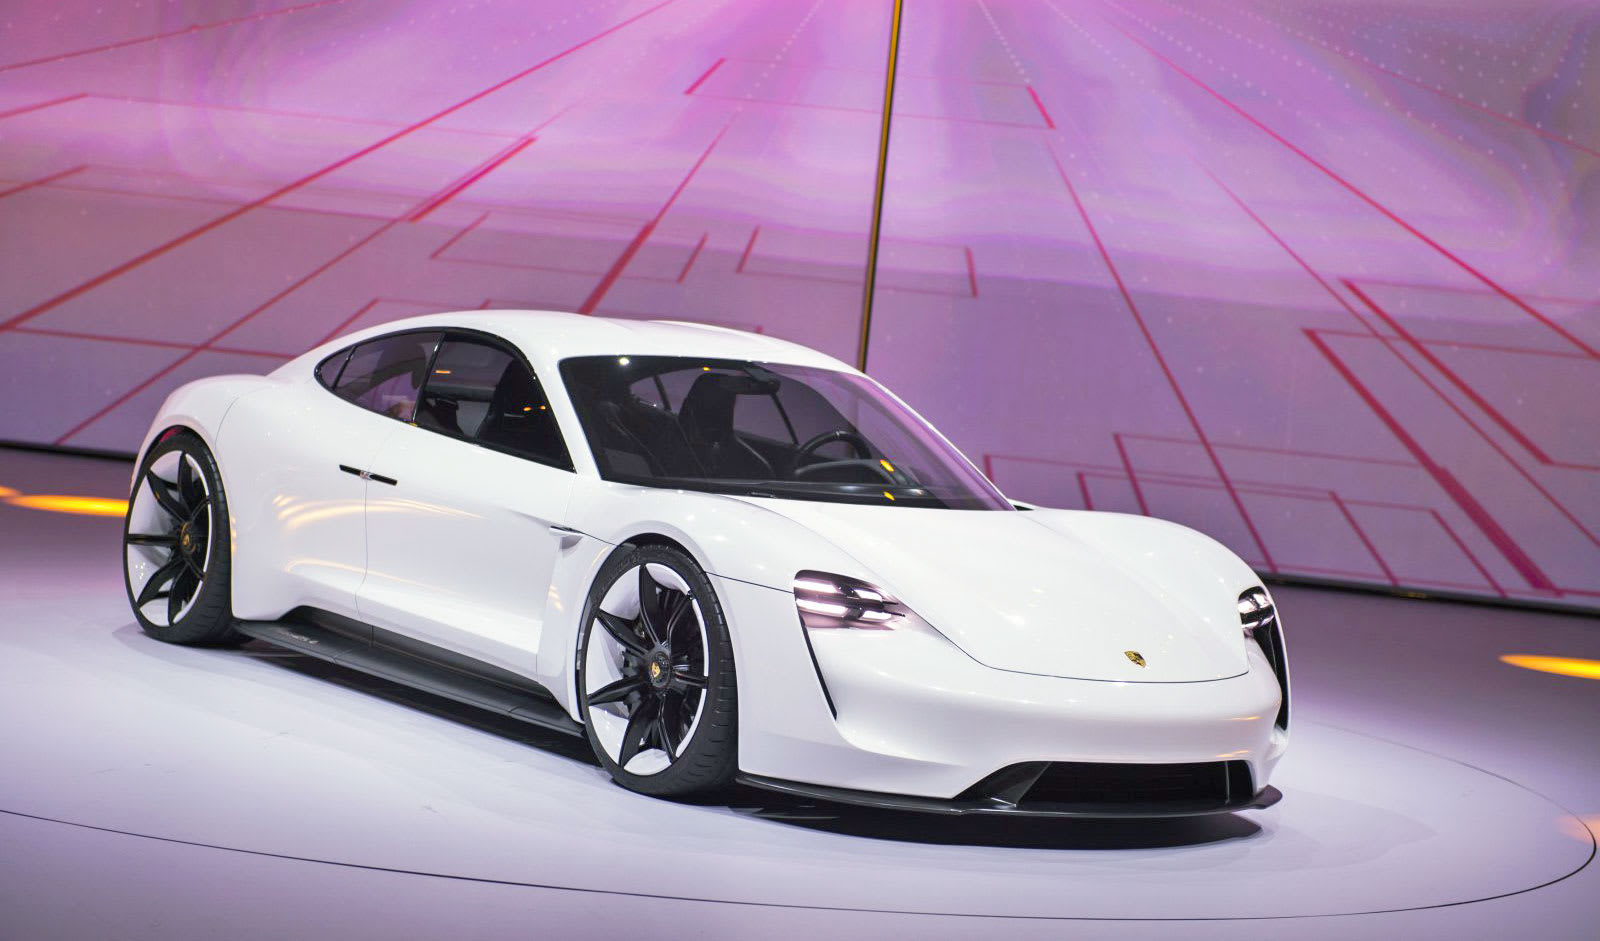 Odd Andersen Afp Getty Images Porsche First Unveiled Its Electric Car